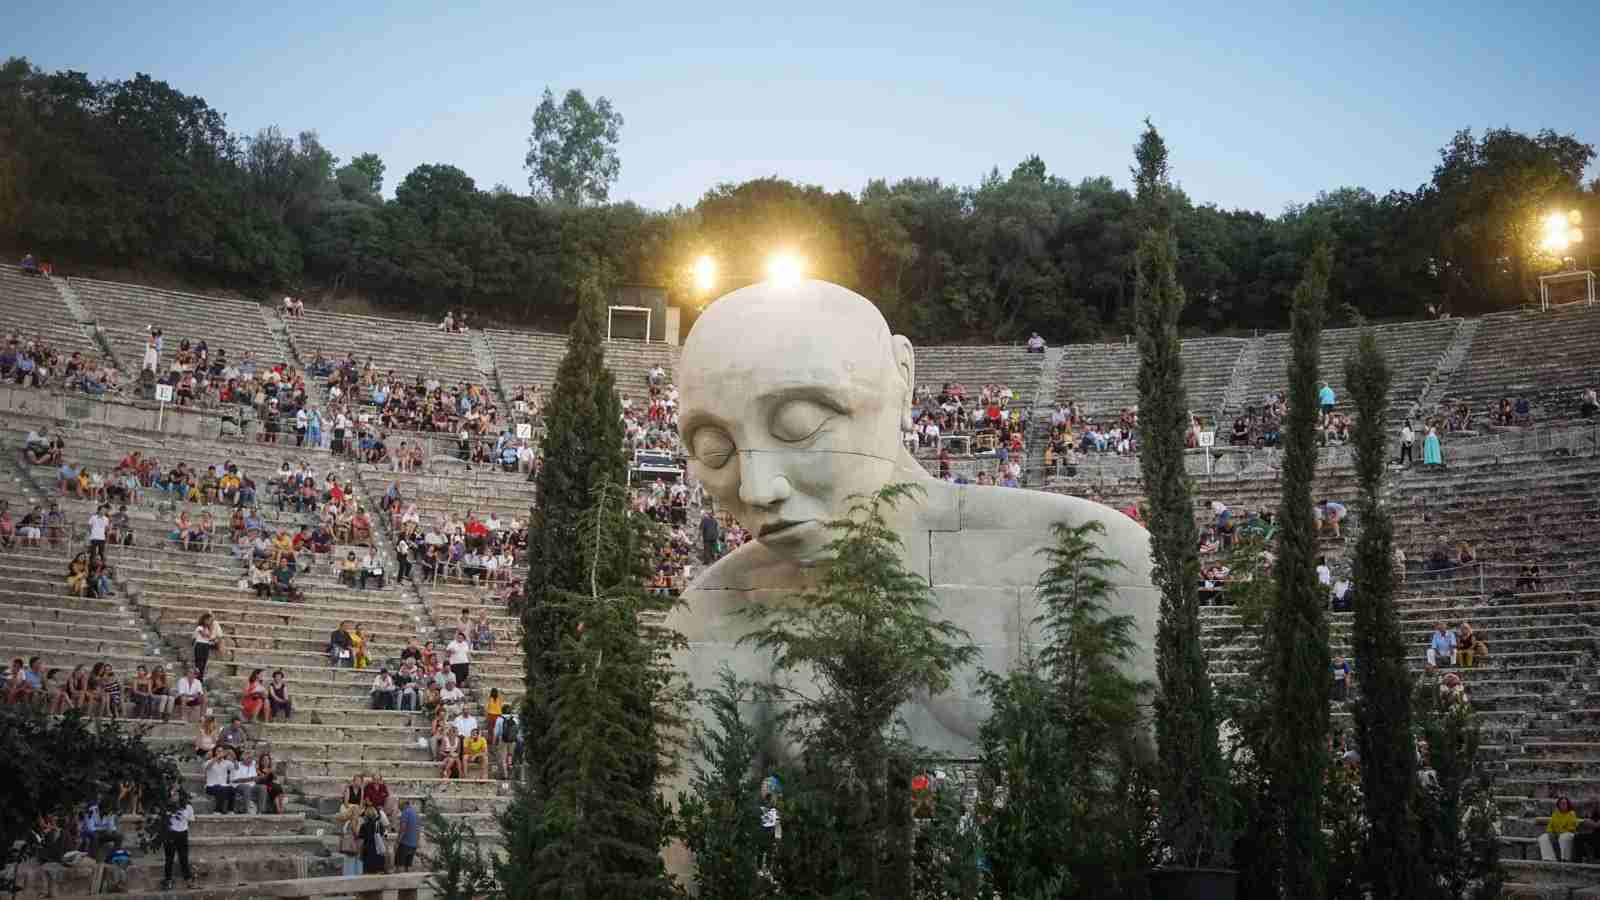 The Athens Festival in Epidaurus, Greece. (Photo by Giannis Alexopoulos/NurPhoto via Getty Images)